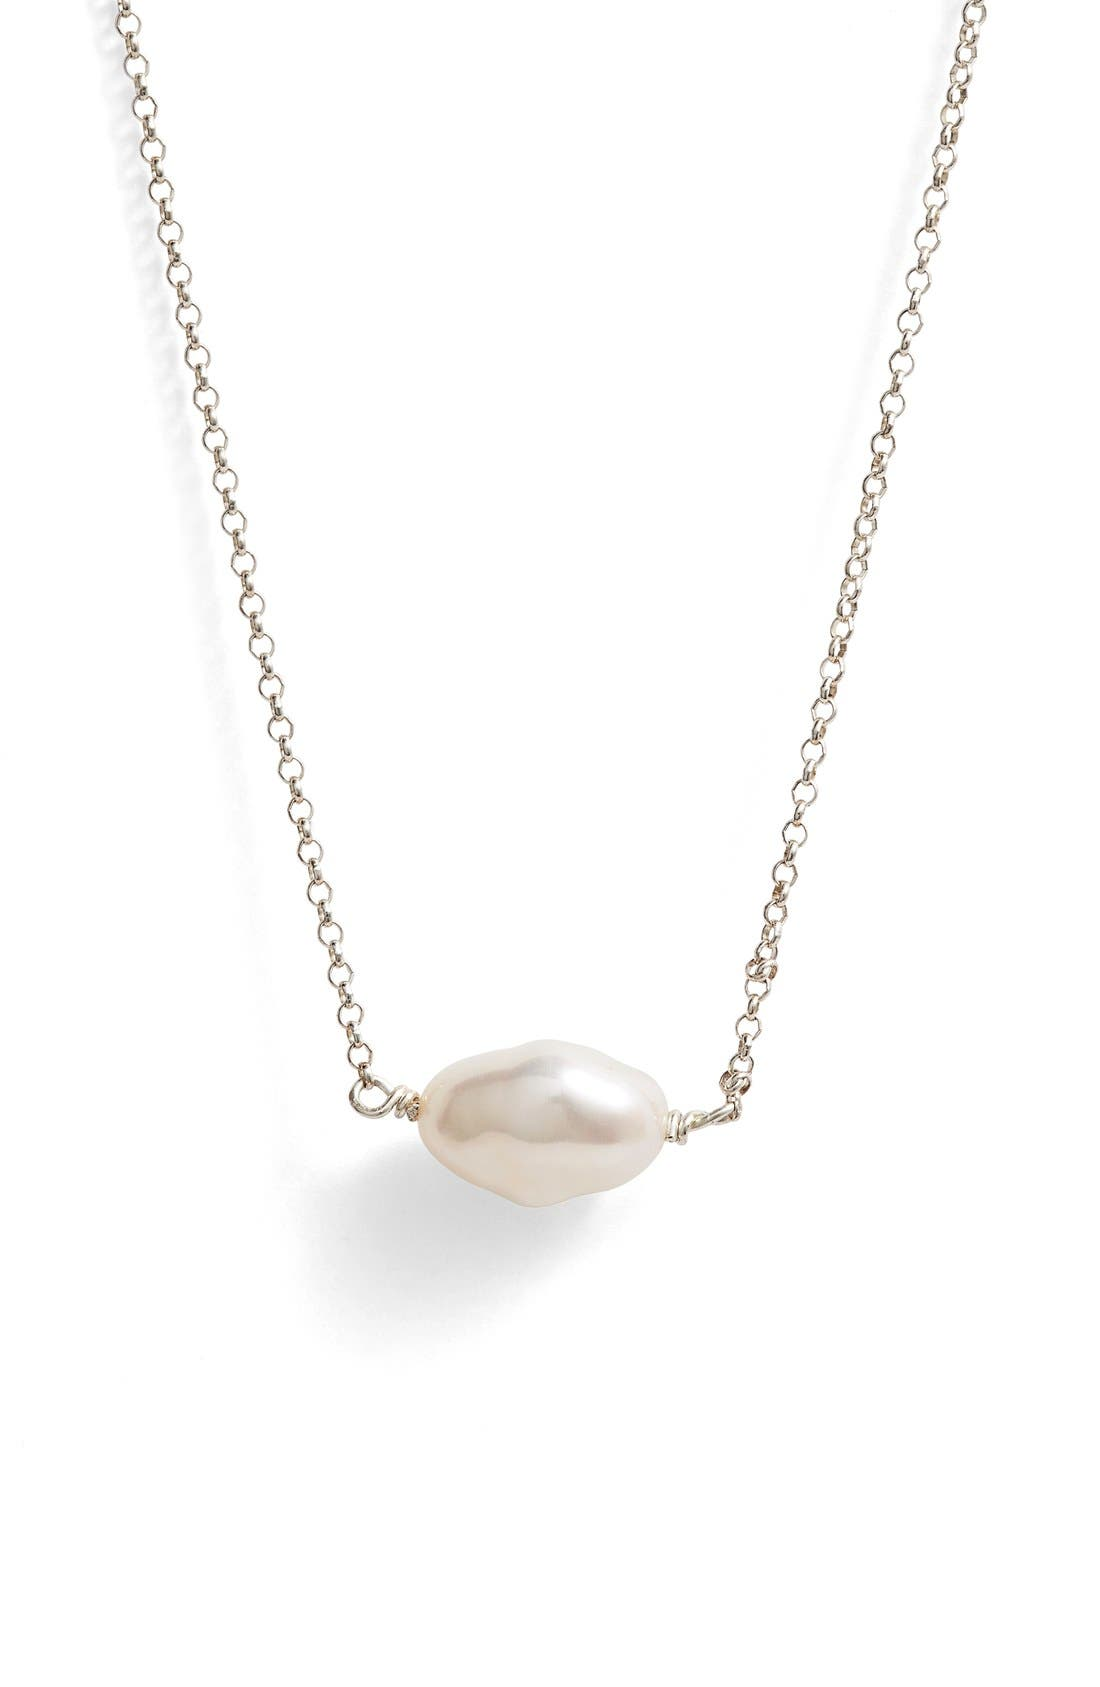 Keshi Cultured Pearl Necklace,                             Alternate thumbnail 3, color,                             STERLING WHITE PEARL